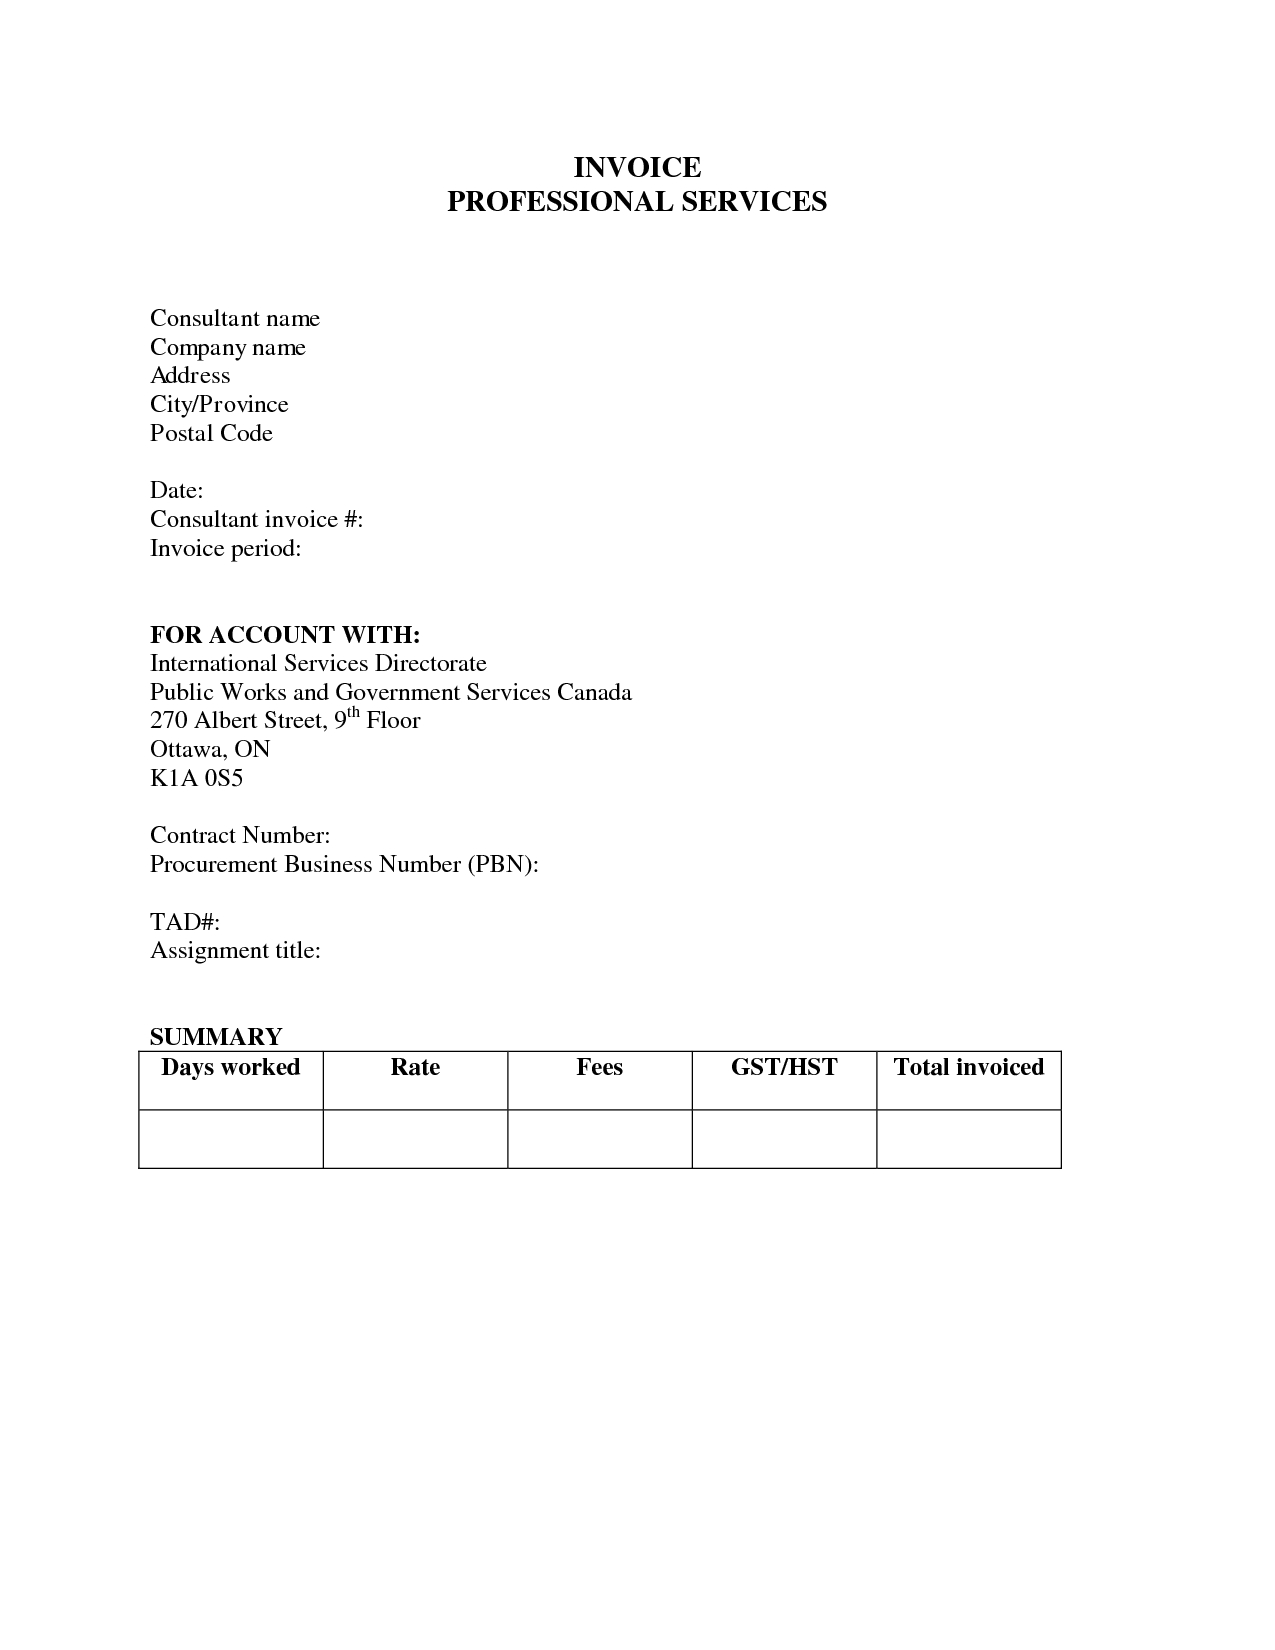 Professional Fees Bill Format Pasoevolistco - Consulting invoice template word for service business